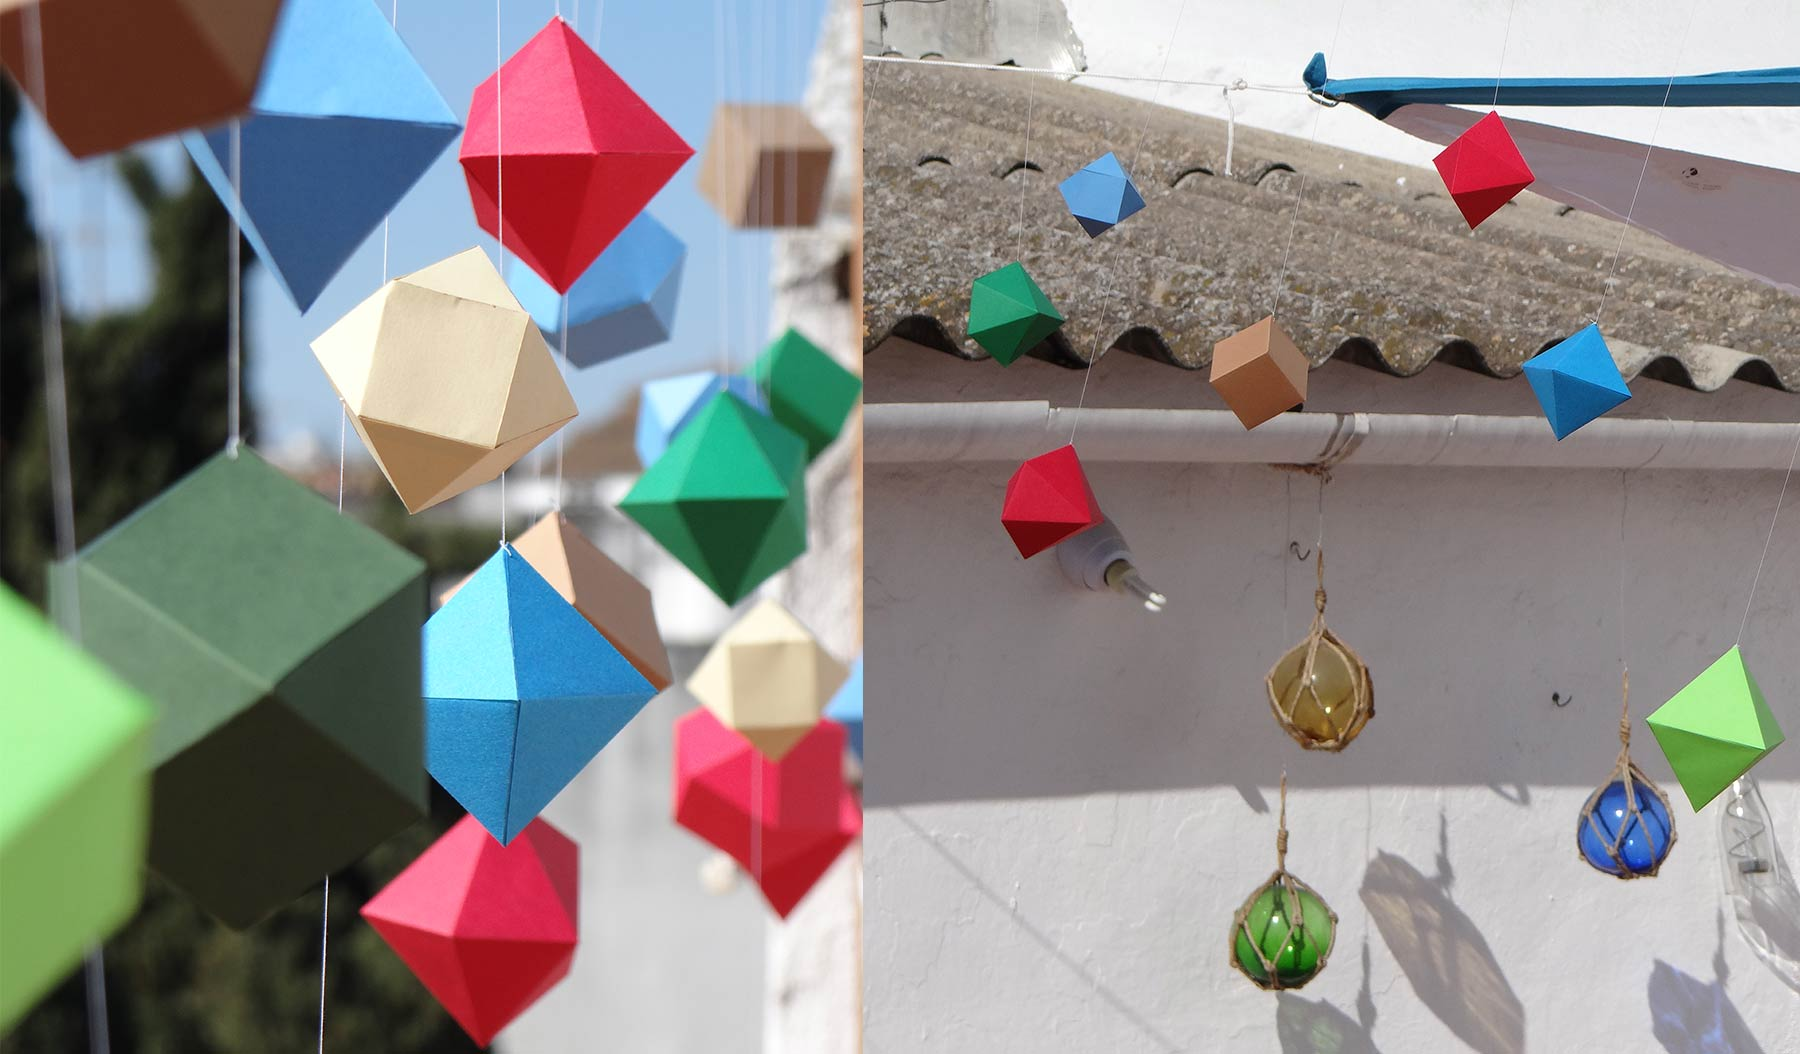 Details of the hanging geometrical items